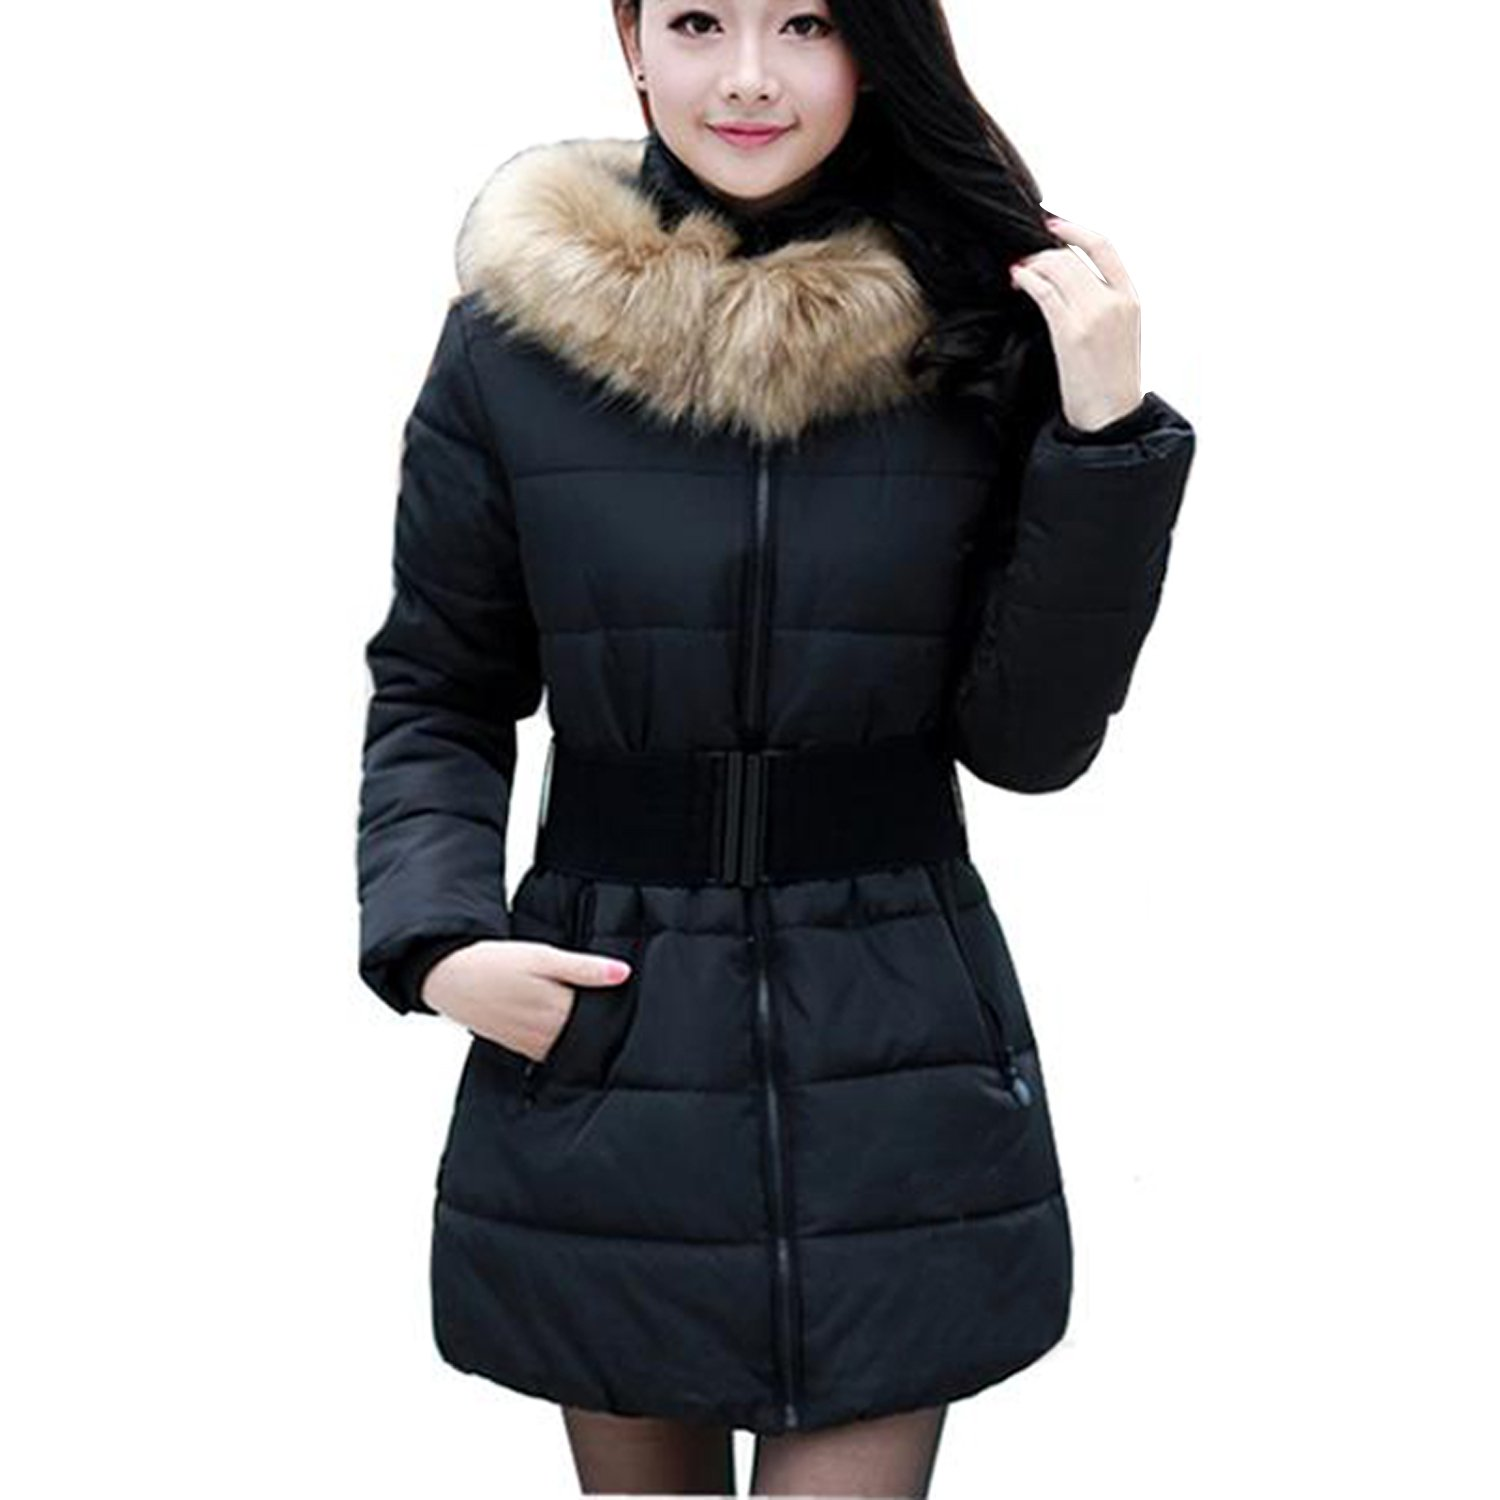 911a97b9b7 Amazon.com  Winter Women Warm Fur Collar Hooded Down Jacket Hoodie Quilted  Puffer Coat Parka  Clothing